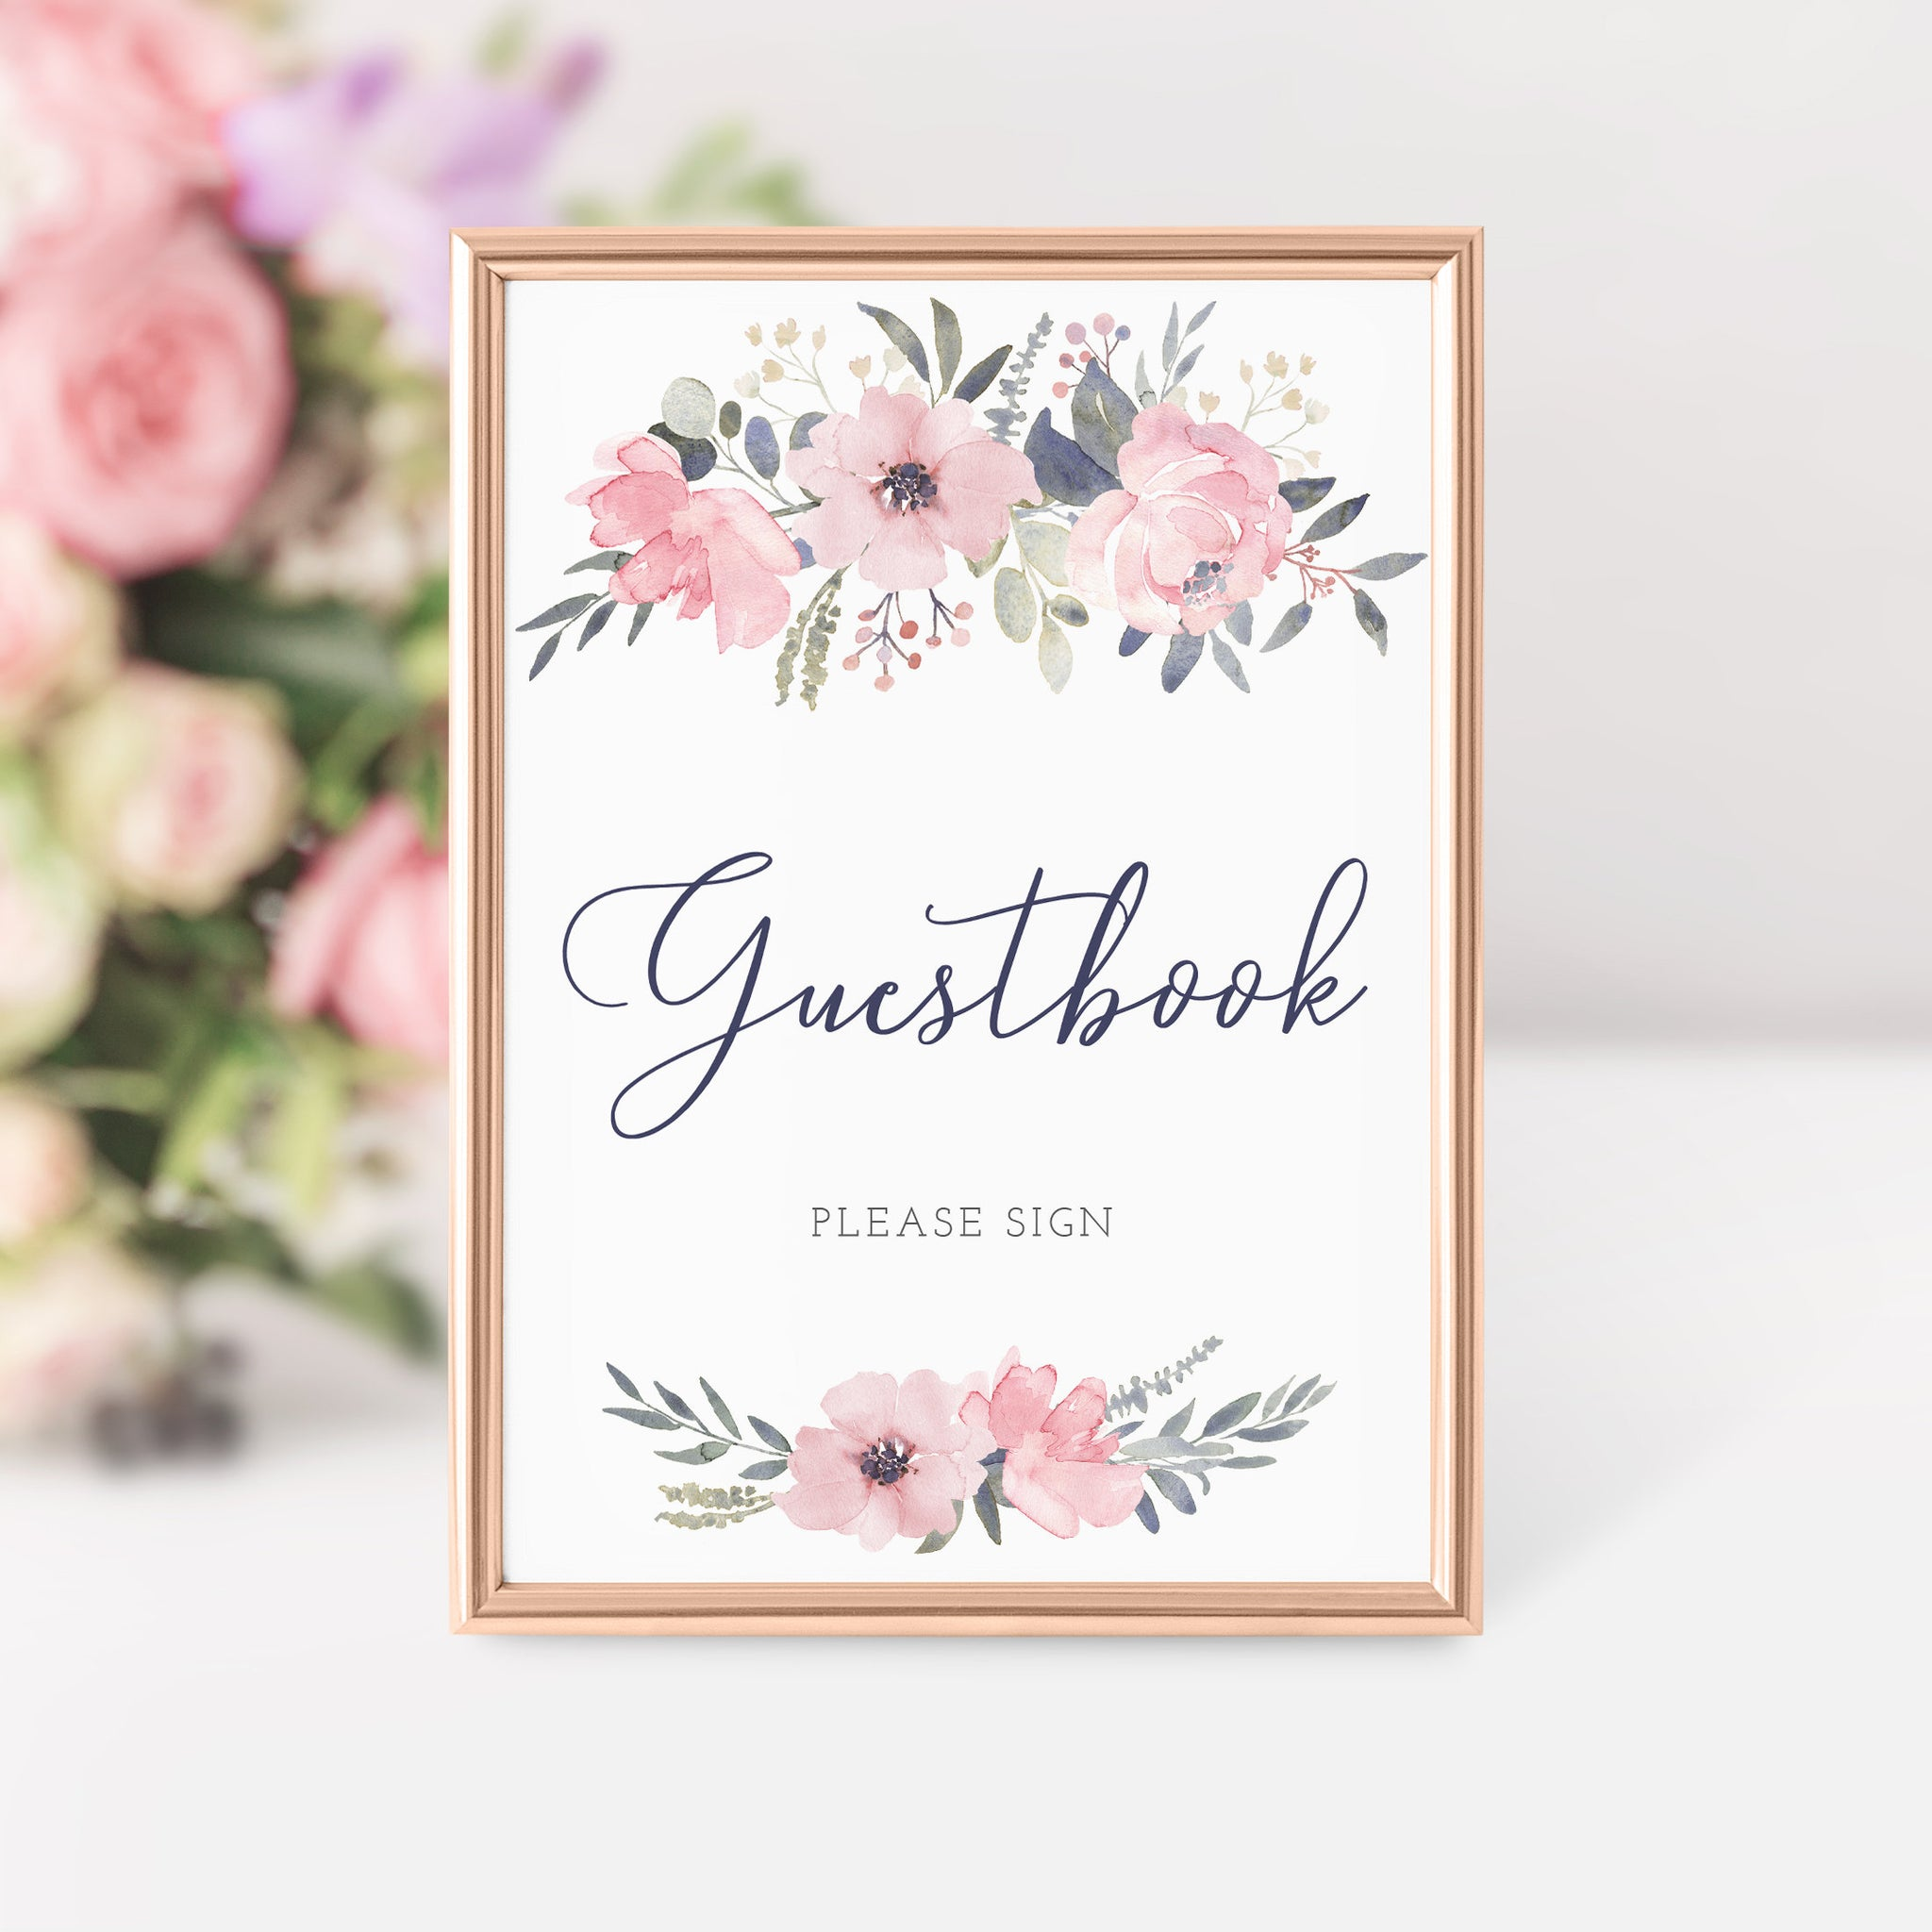 Navy and Blush Floral Printable Guestbook Sign INSTANT DOWNLOAD, Birthday, Bridal Shower, Baby Shower, Wedding Decorations Supplies - NB100 - @PlumPolkaDot